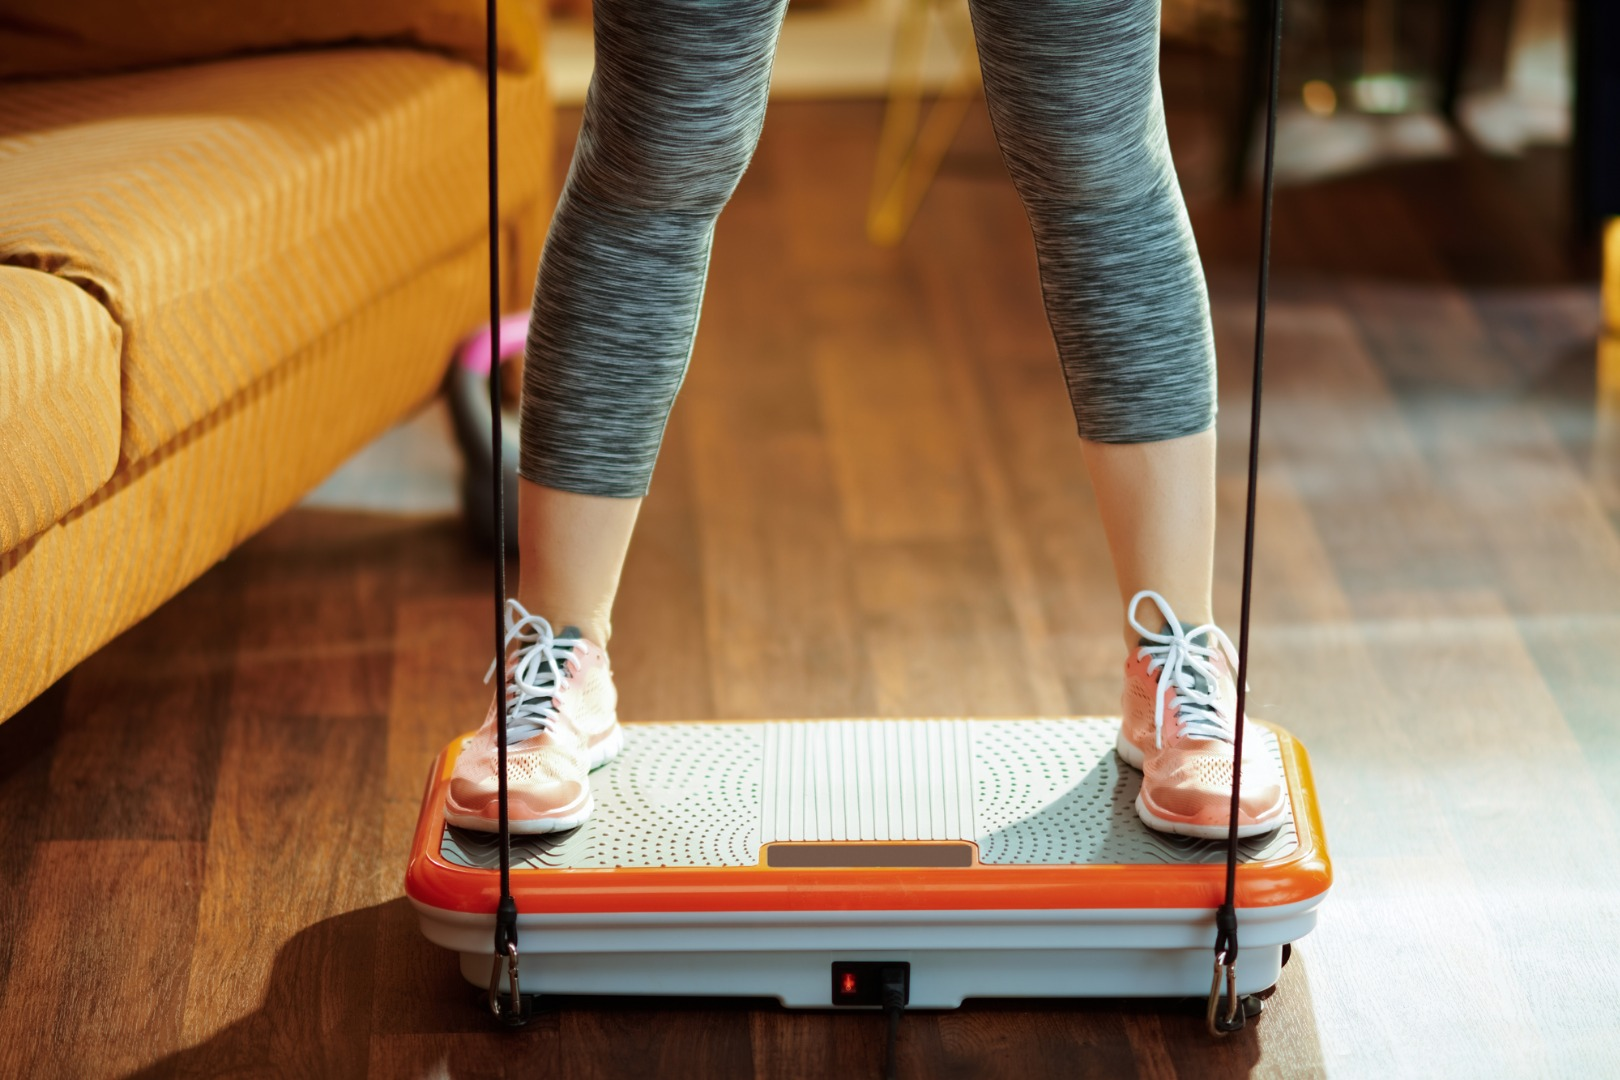 Mouse study suggests vibration therapy can reduce inflammation and improve the microbiome